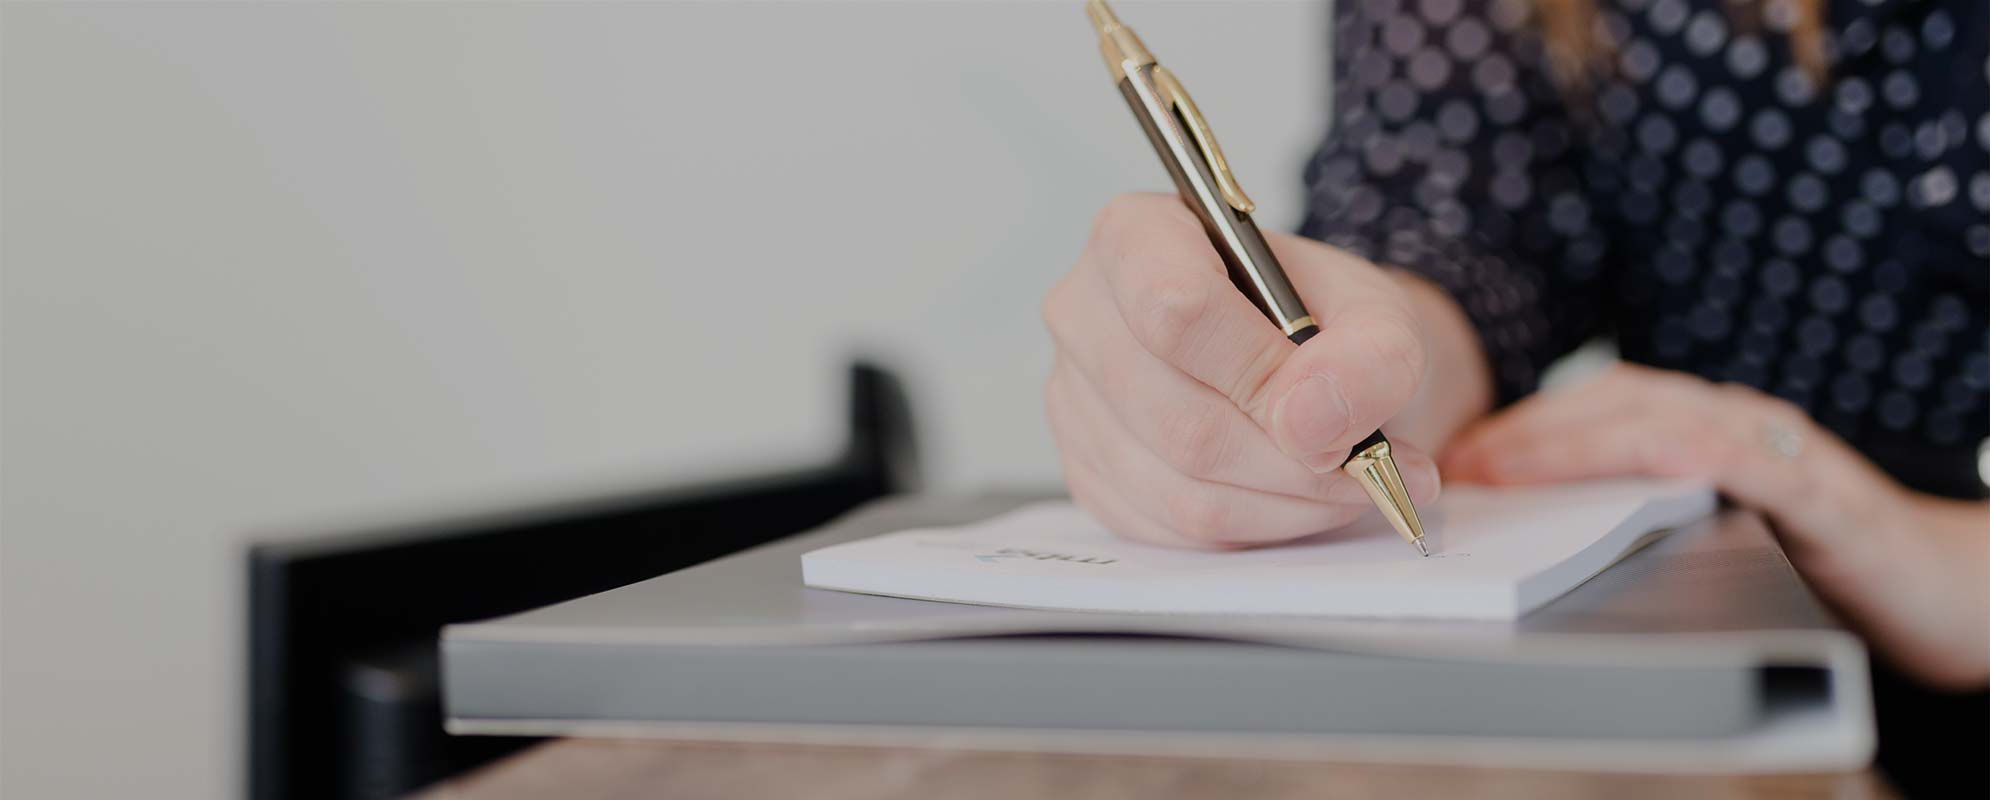 Woman Holding Pen Writing on Paper